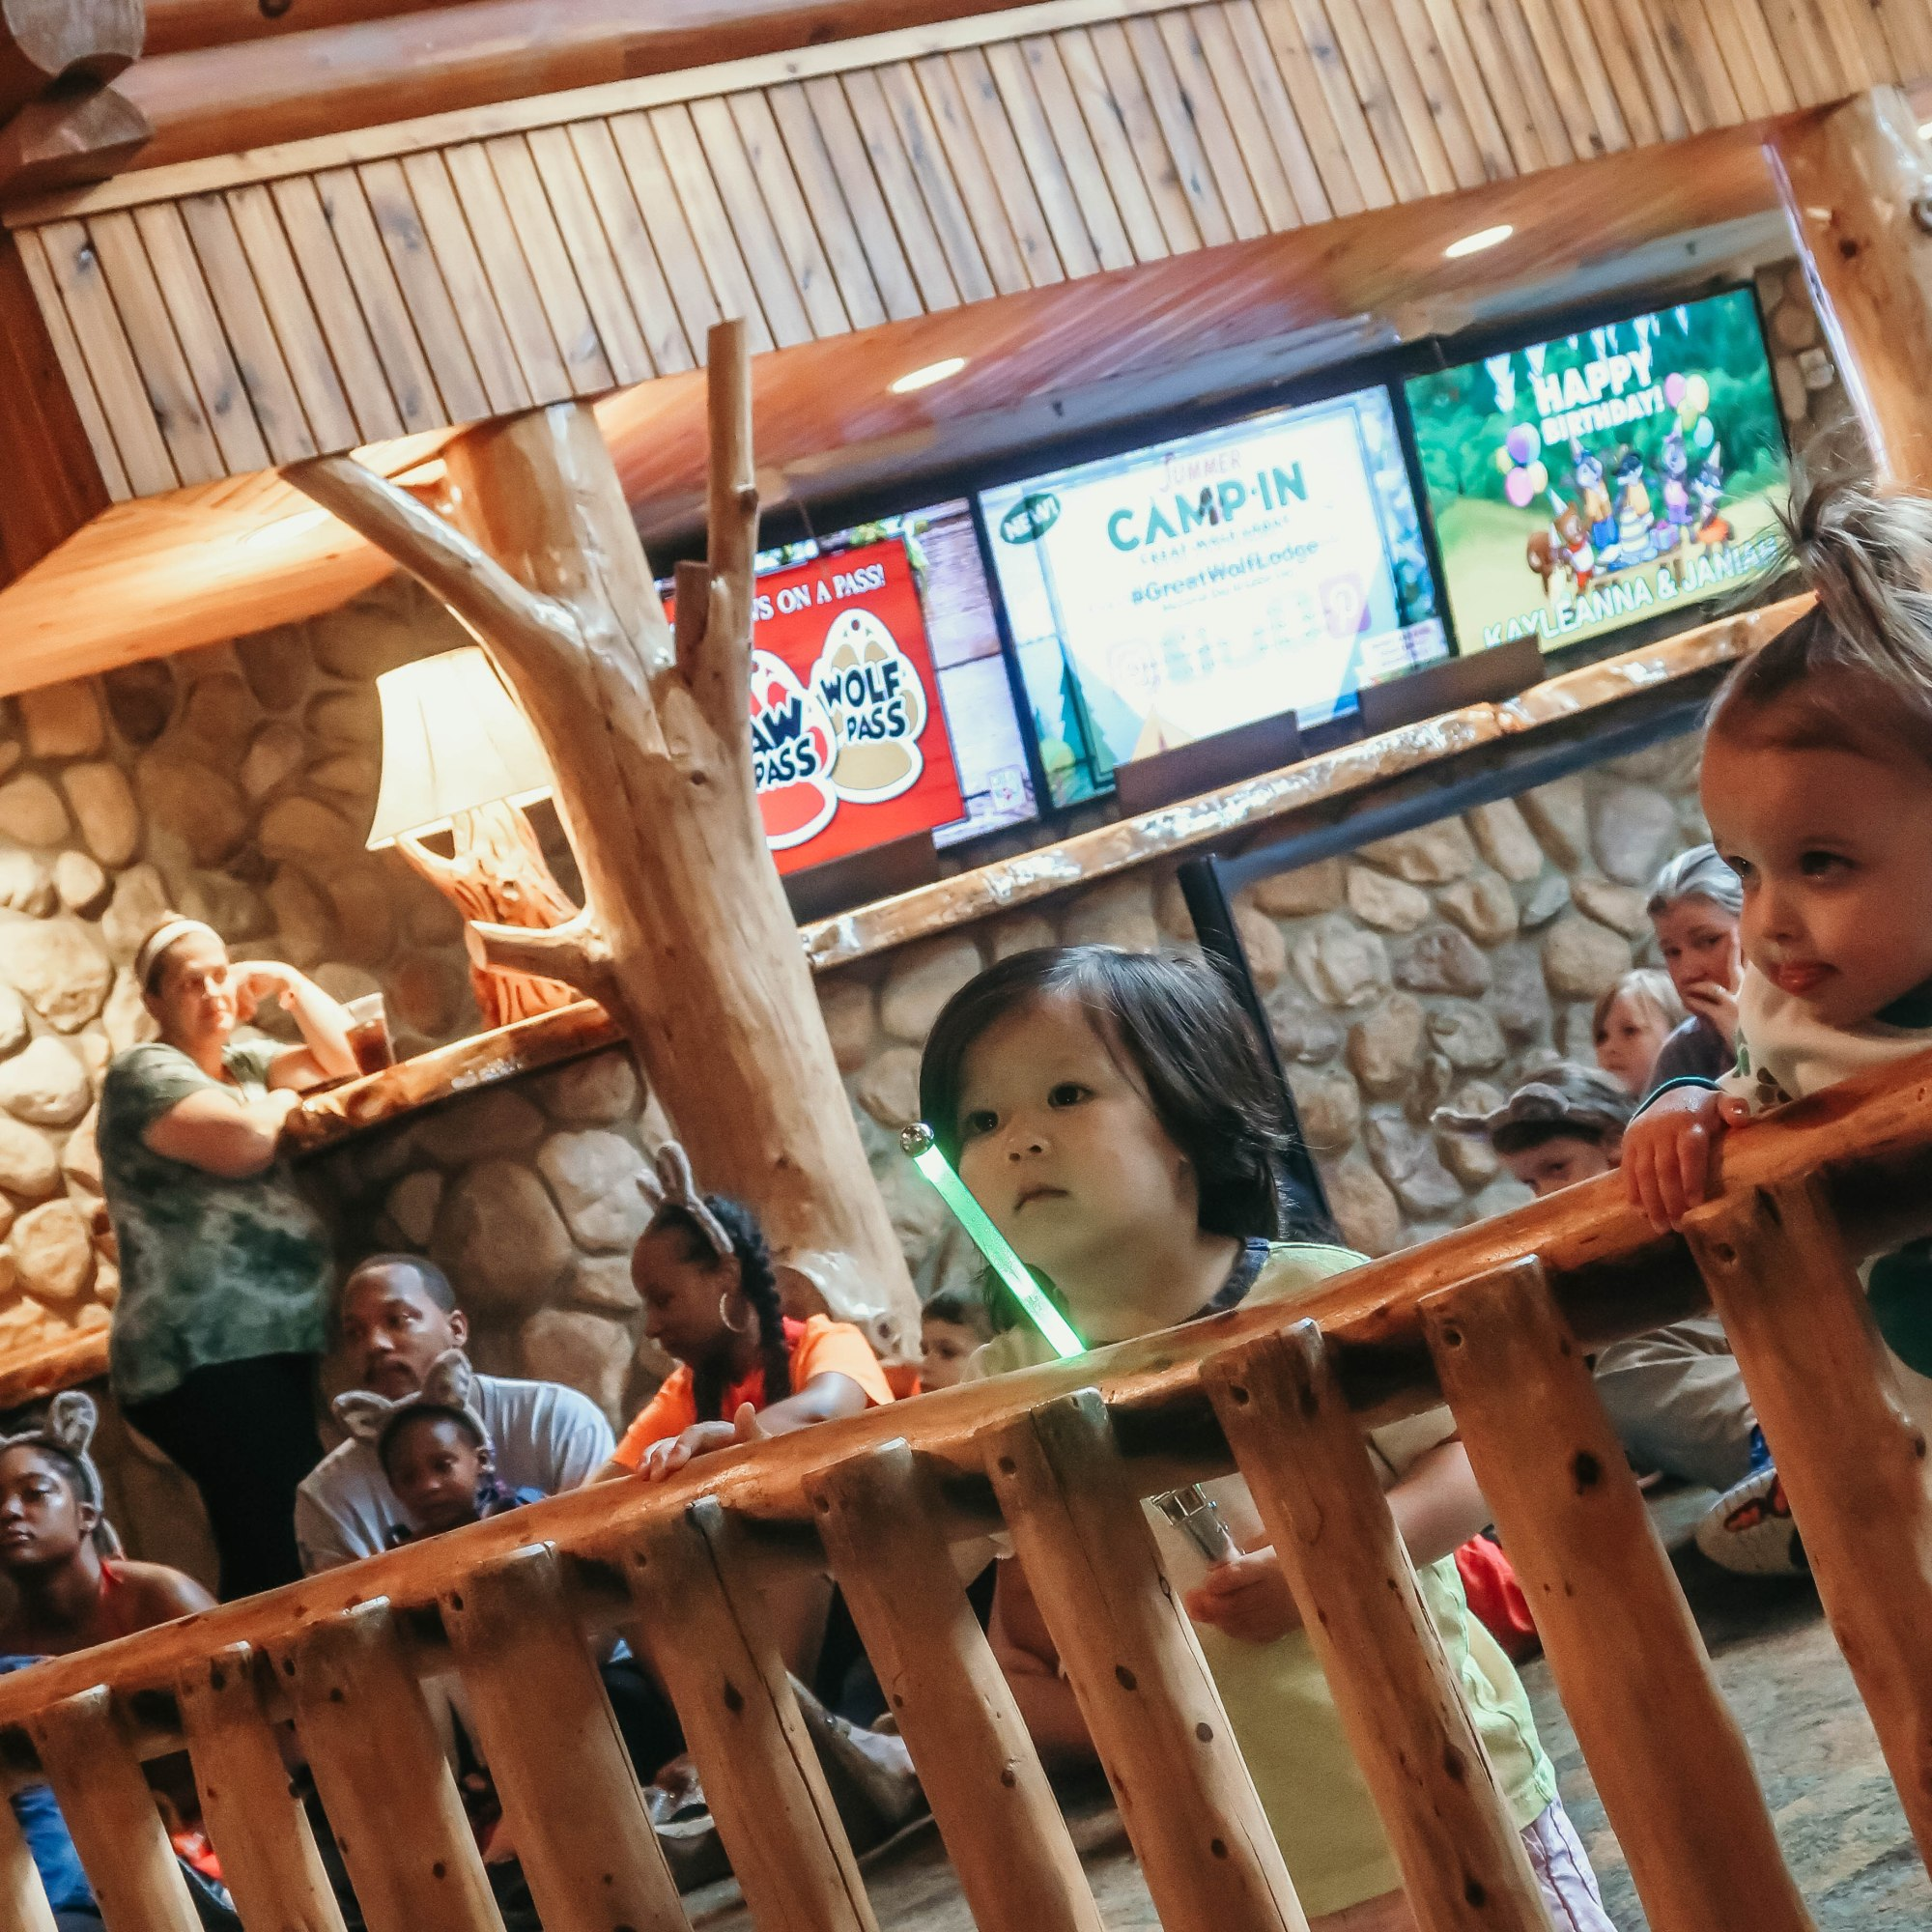 Summer Camp-In at Great Wolf Lodge Sandusky Ohio